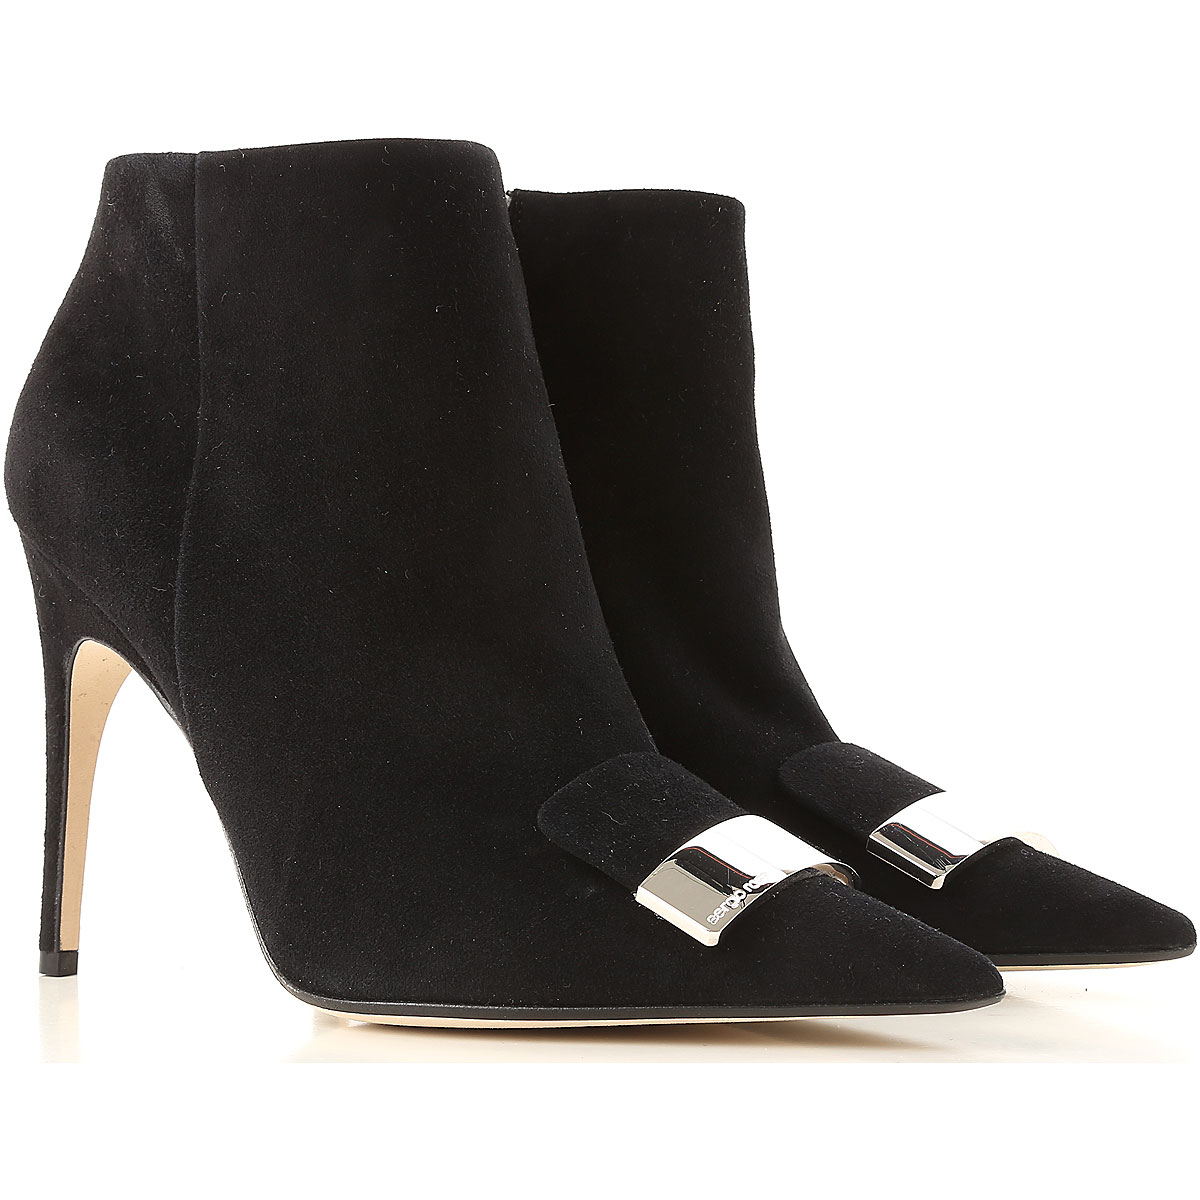 Image of Sergio Rossi Boots for Women, Booties, Black, Leather, 2017, 10 5 6 6.5 7 8 8.5